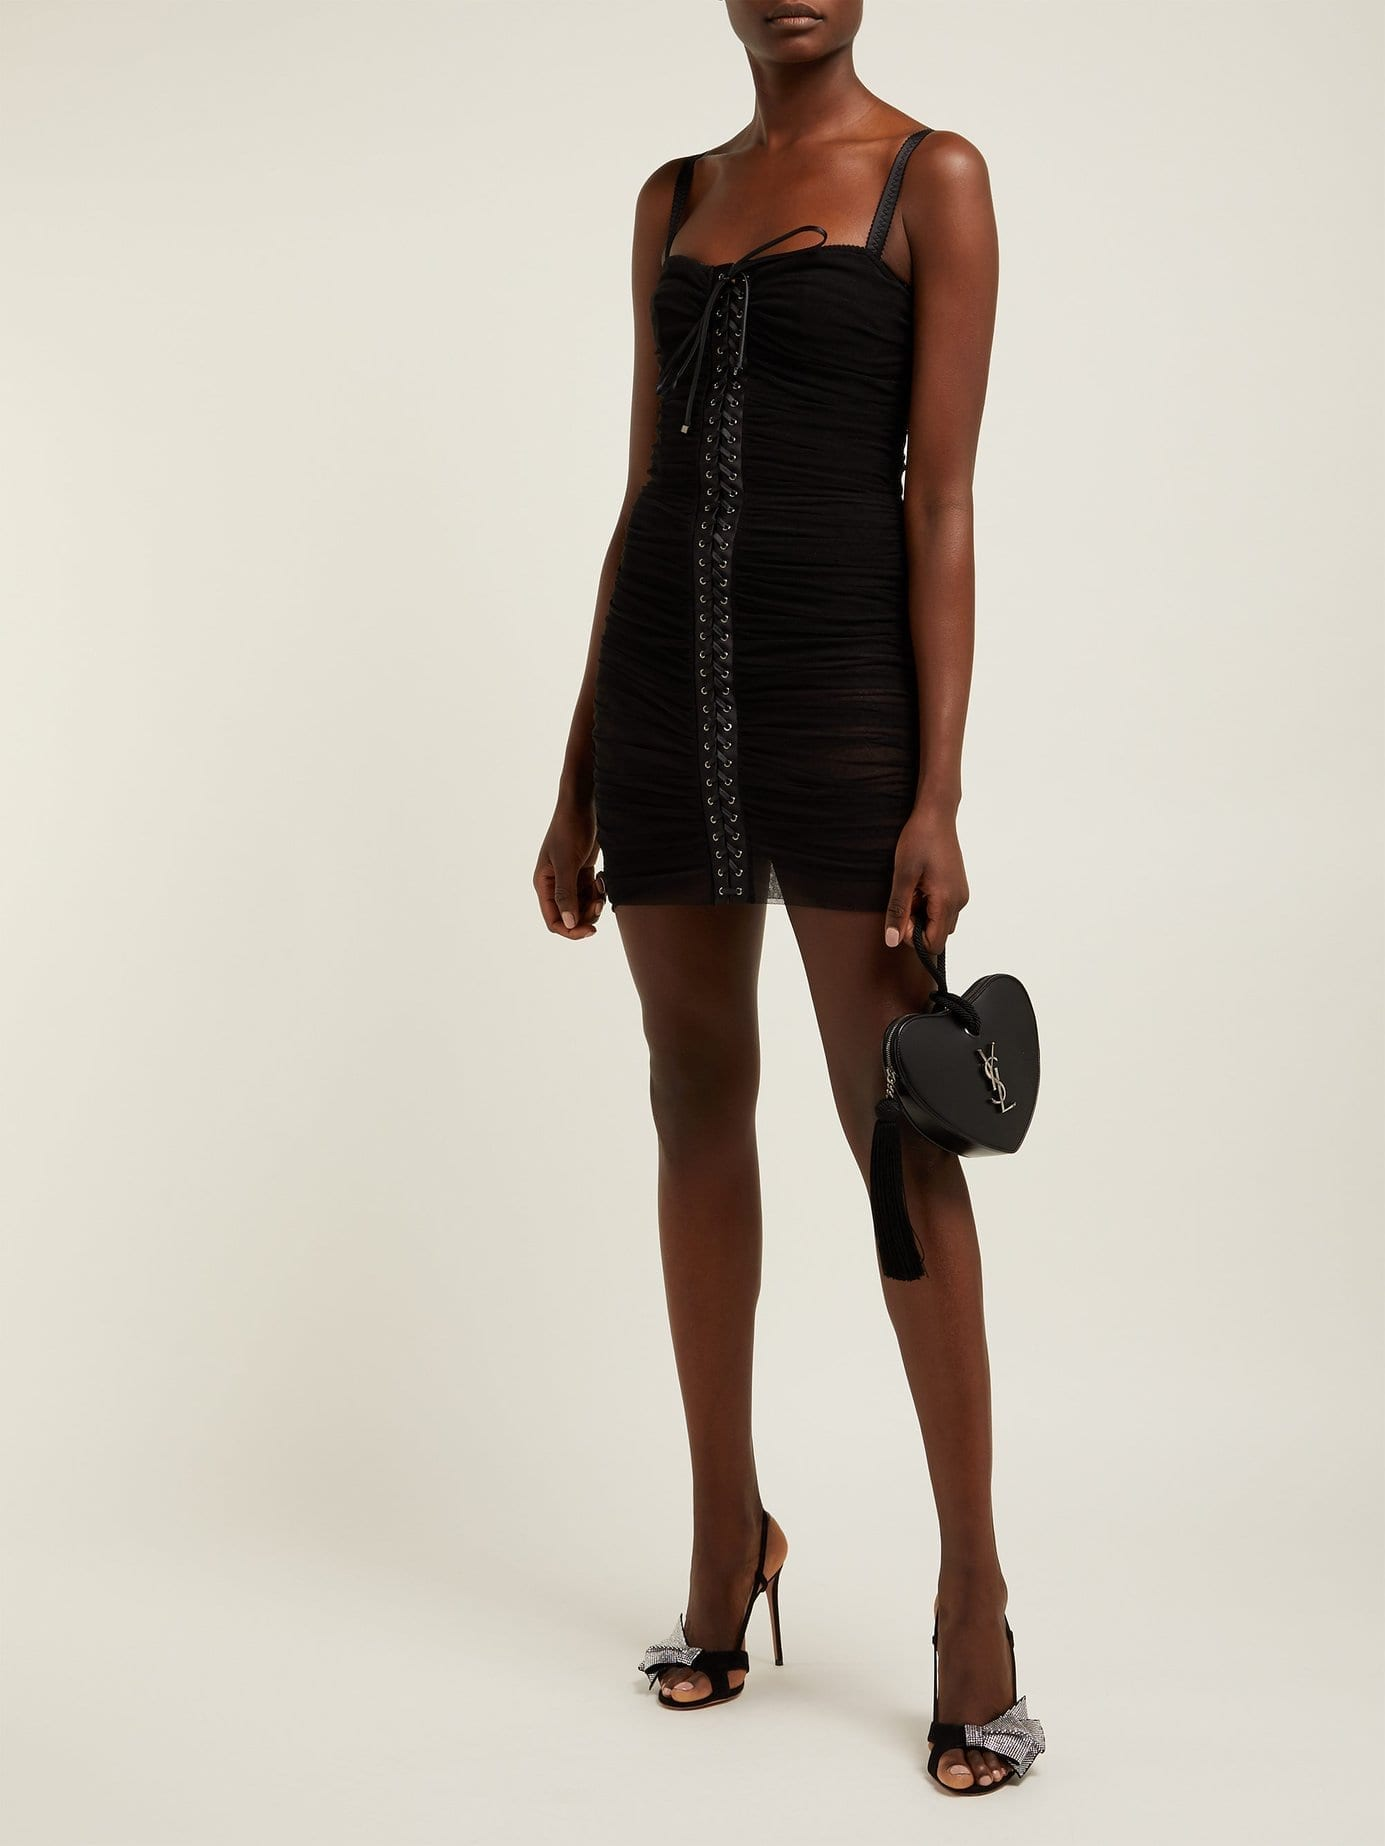 65151f2f364 DOLCE   GABBANA Ruched Tulle Lace-up Corset Black Dress - We Select ...